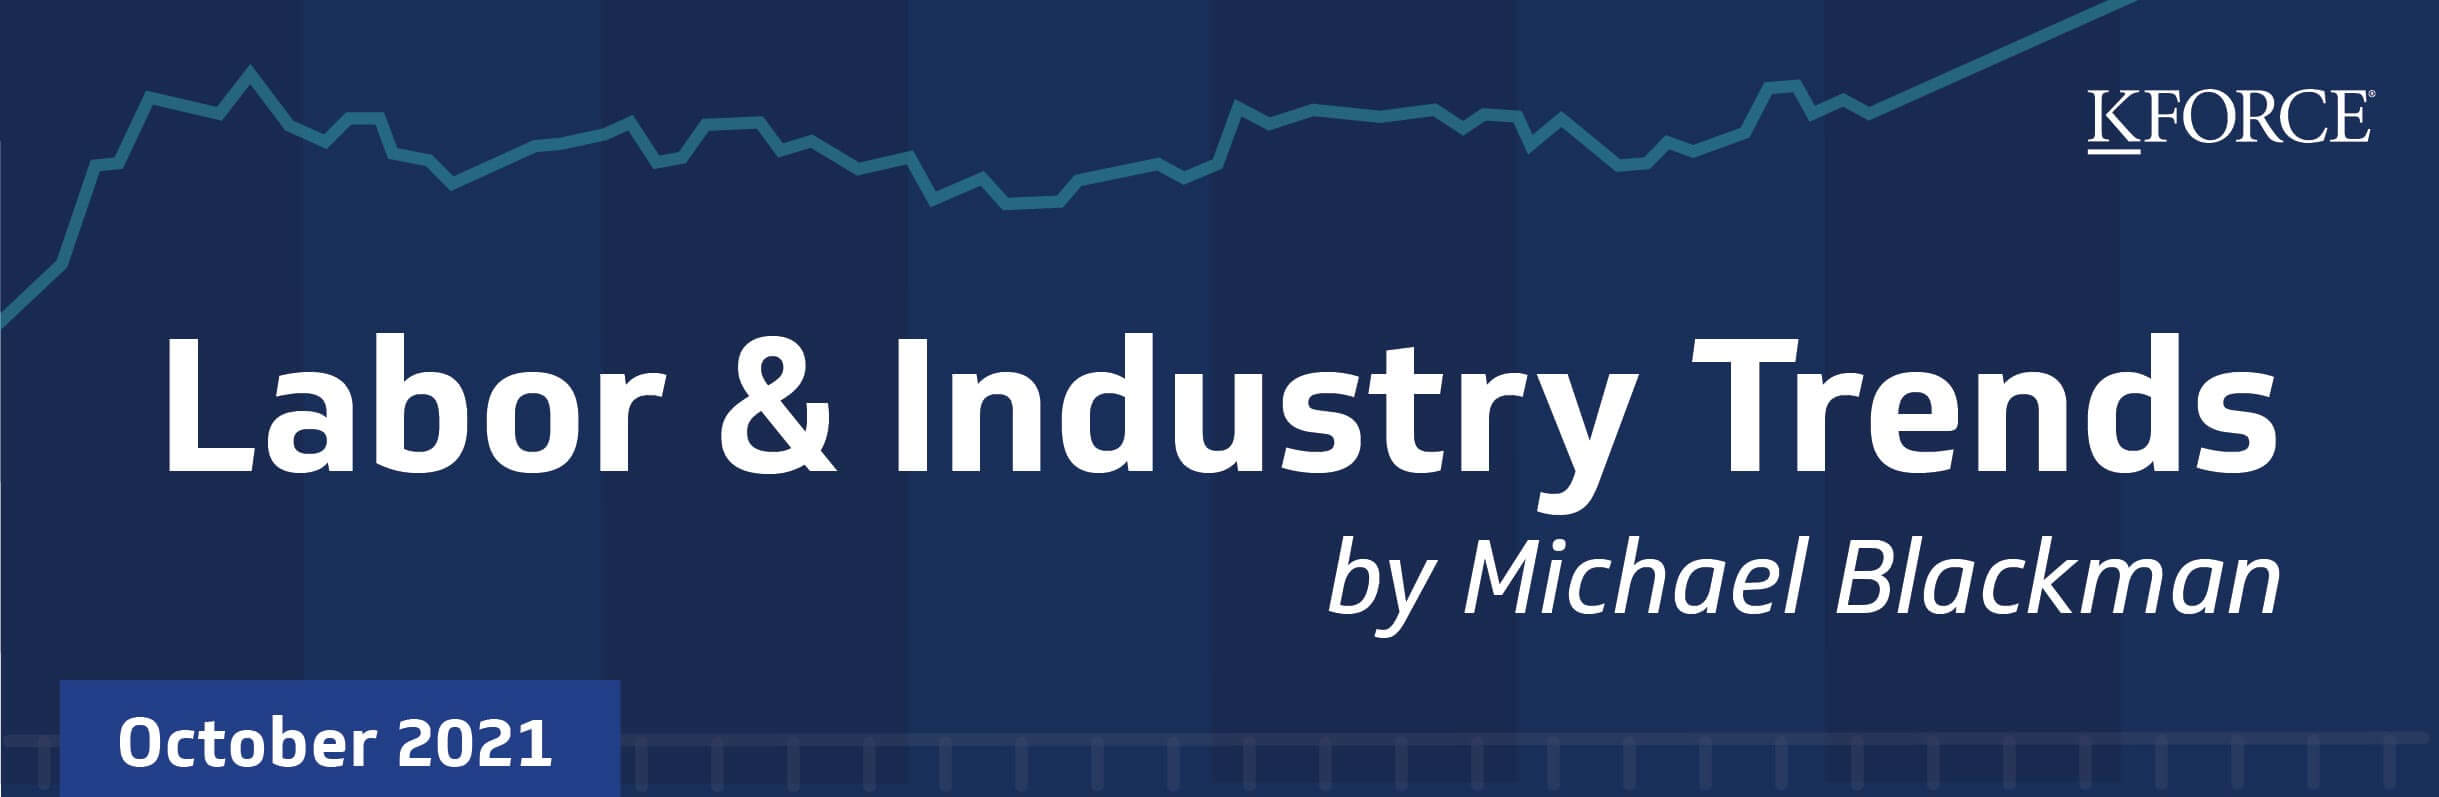 Labor & Industry Trends - October 2021 by Michael Blackman